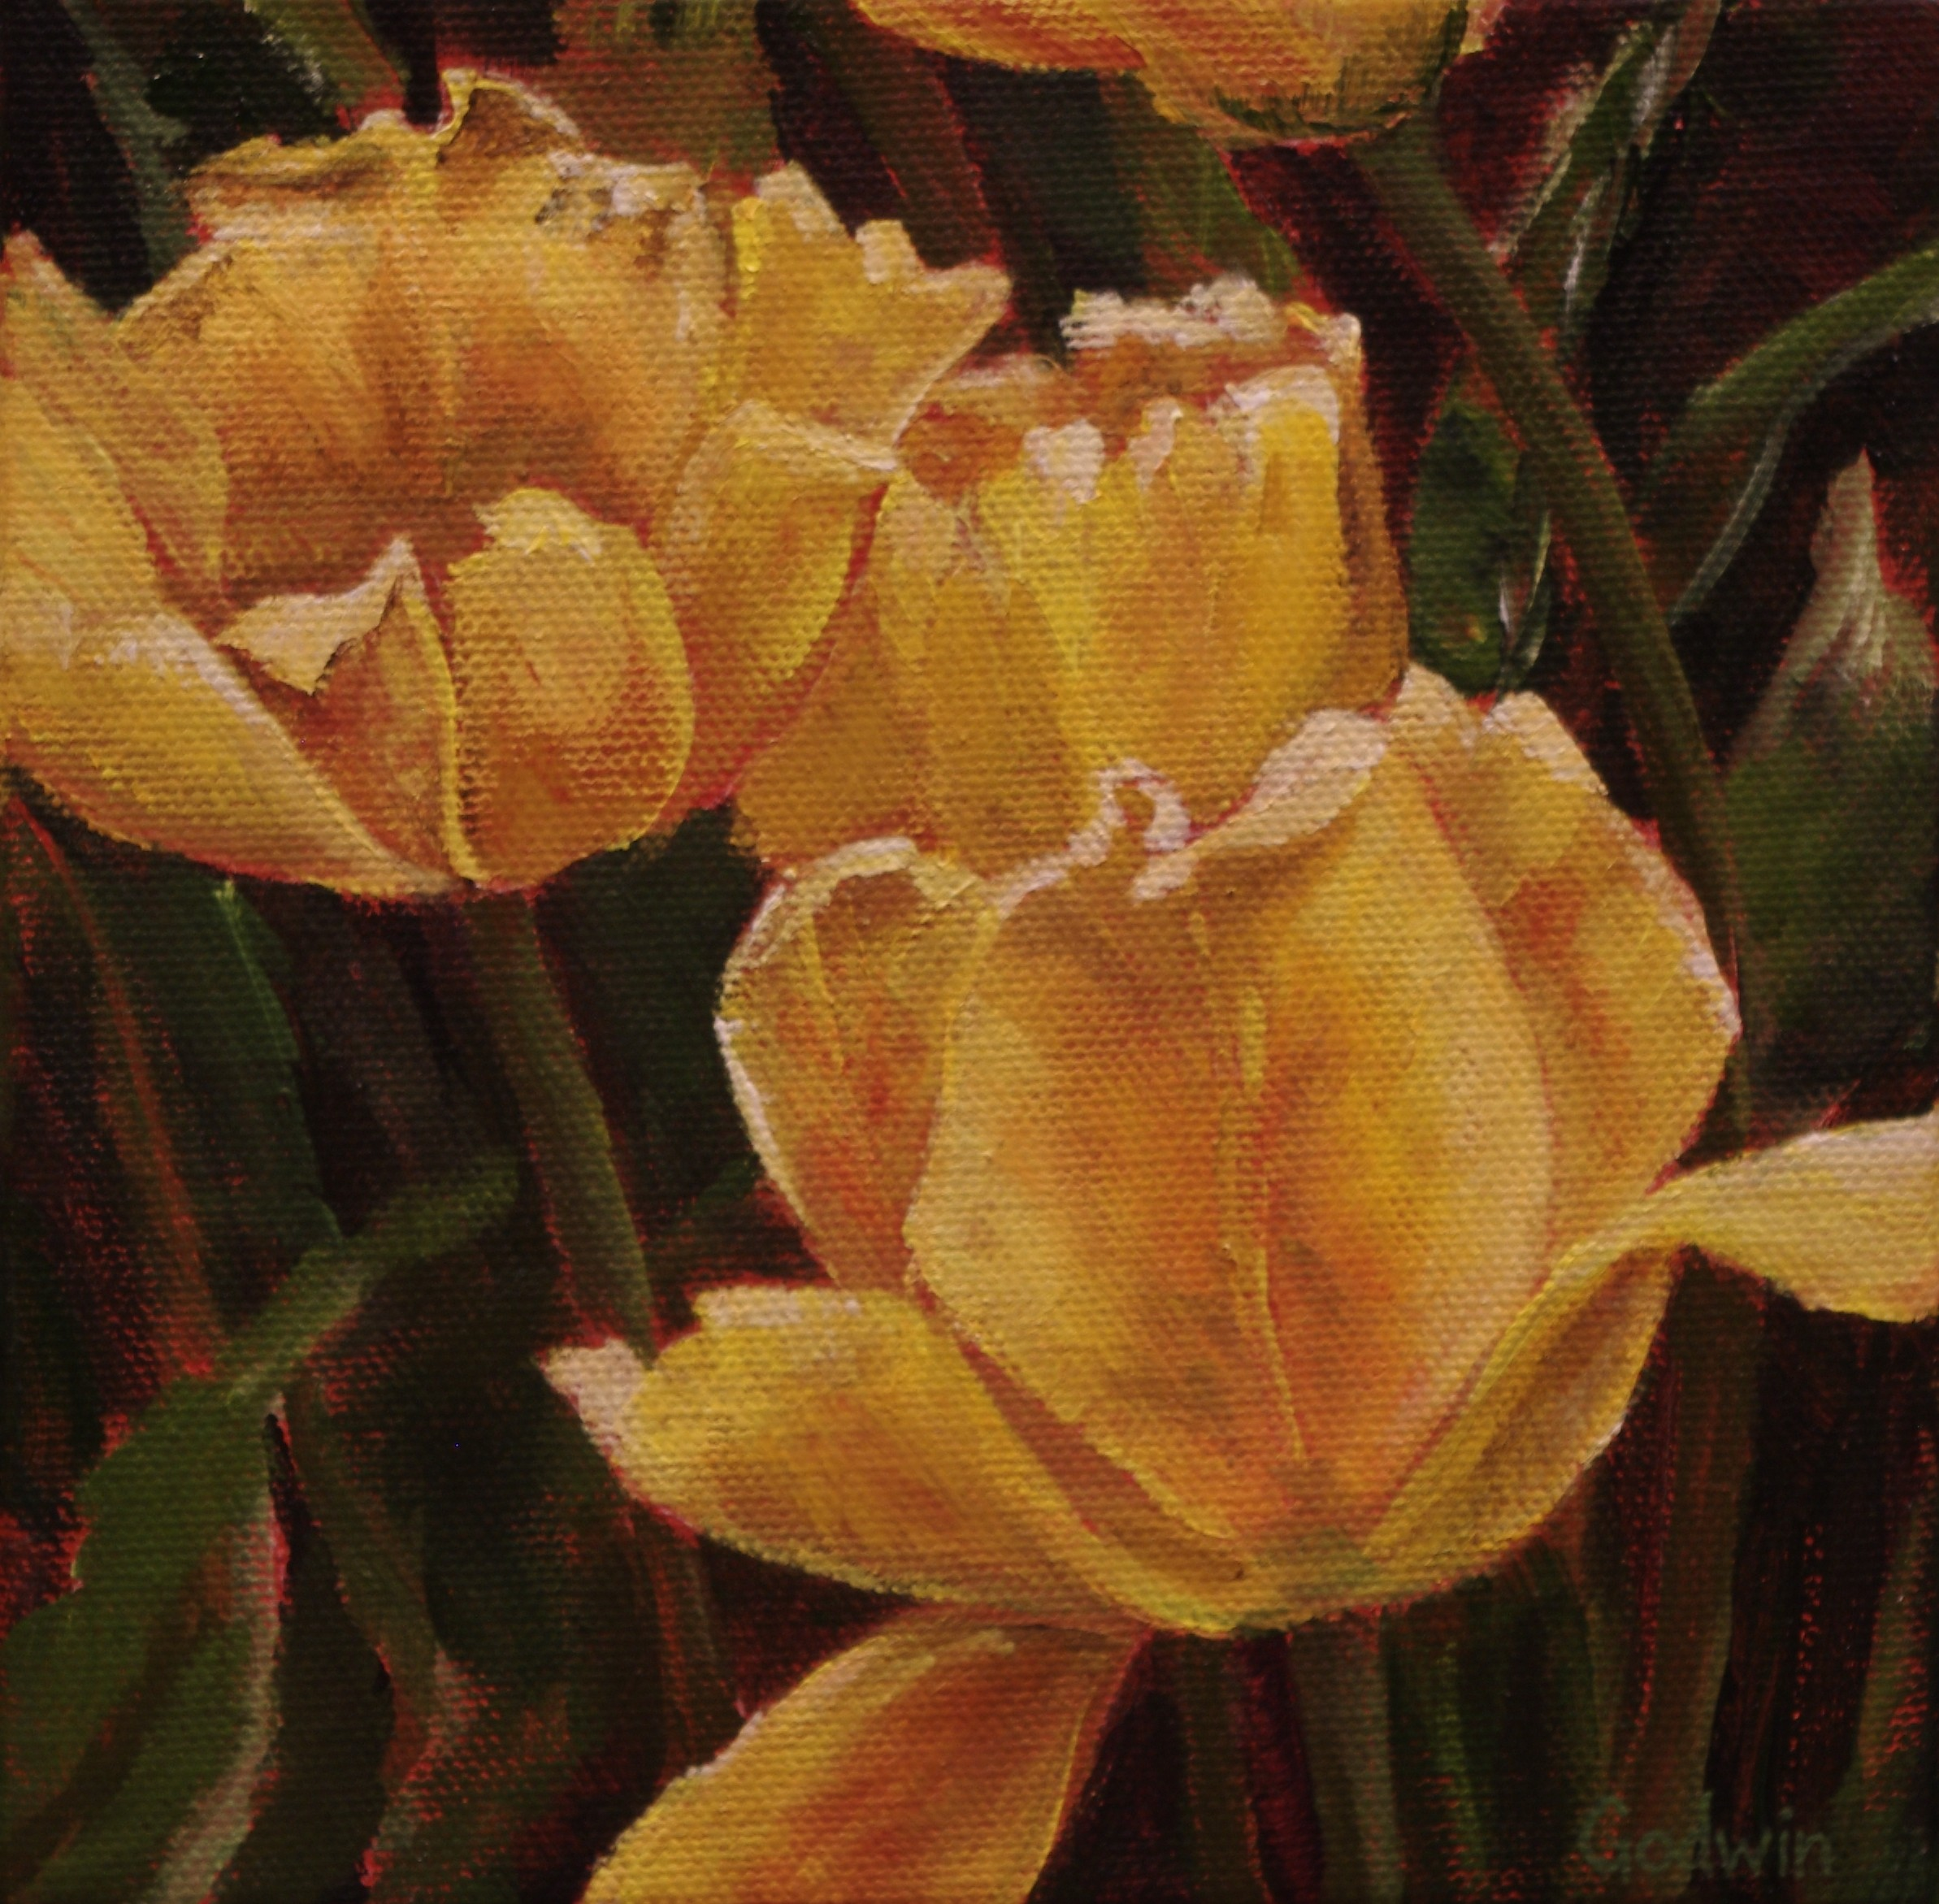 Flower Studies-Golden Memories